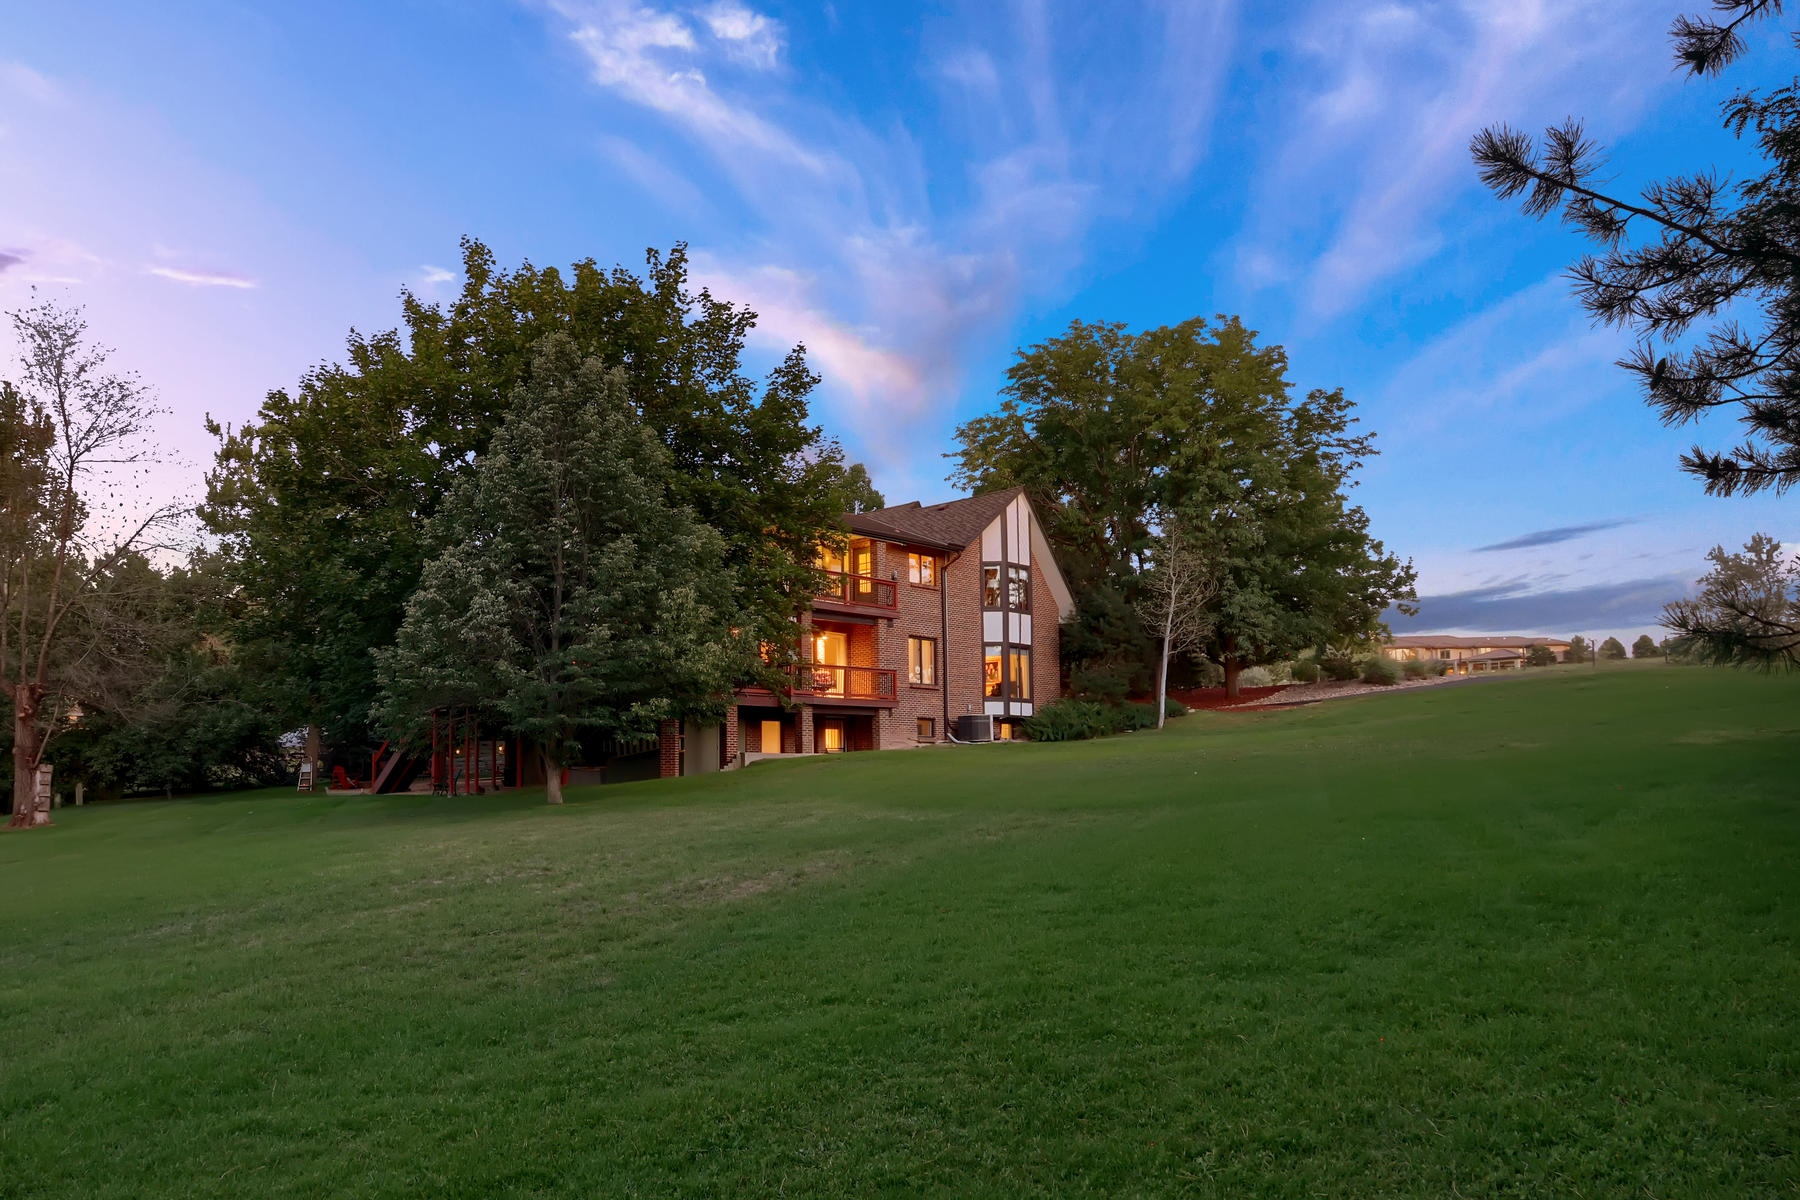 Single Family Homes for Sale at Amazing Setting Near DTC 6937 E Berry Avenue Greenwood Village, Colorado 80111 United States